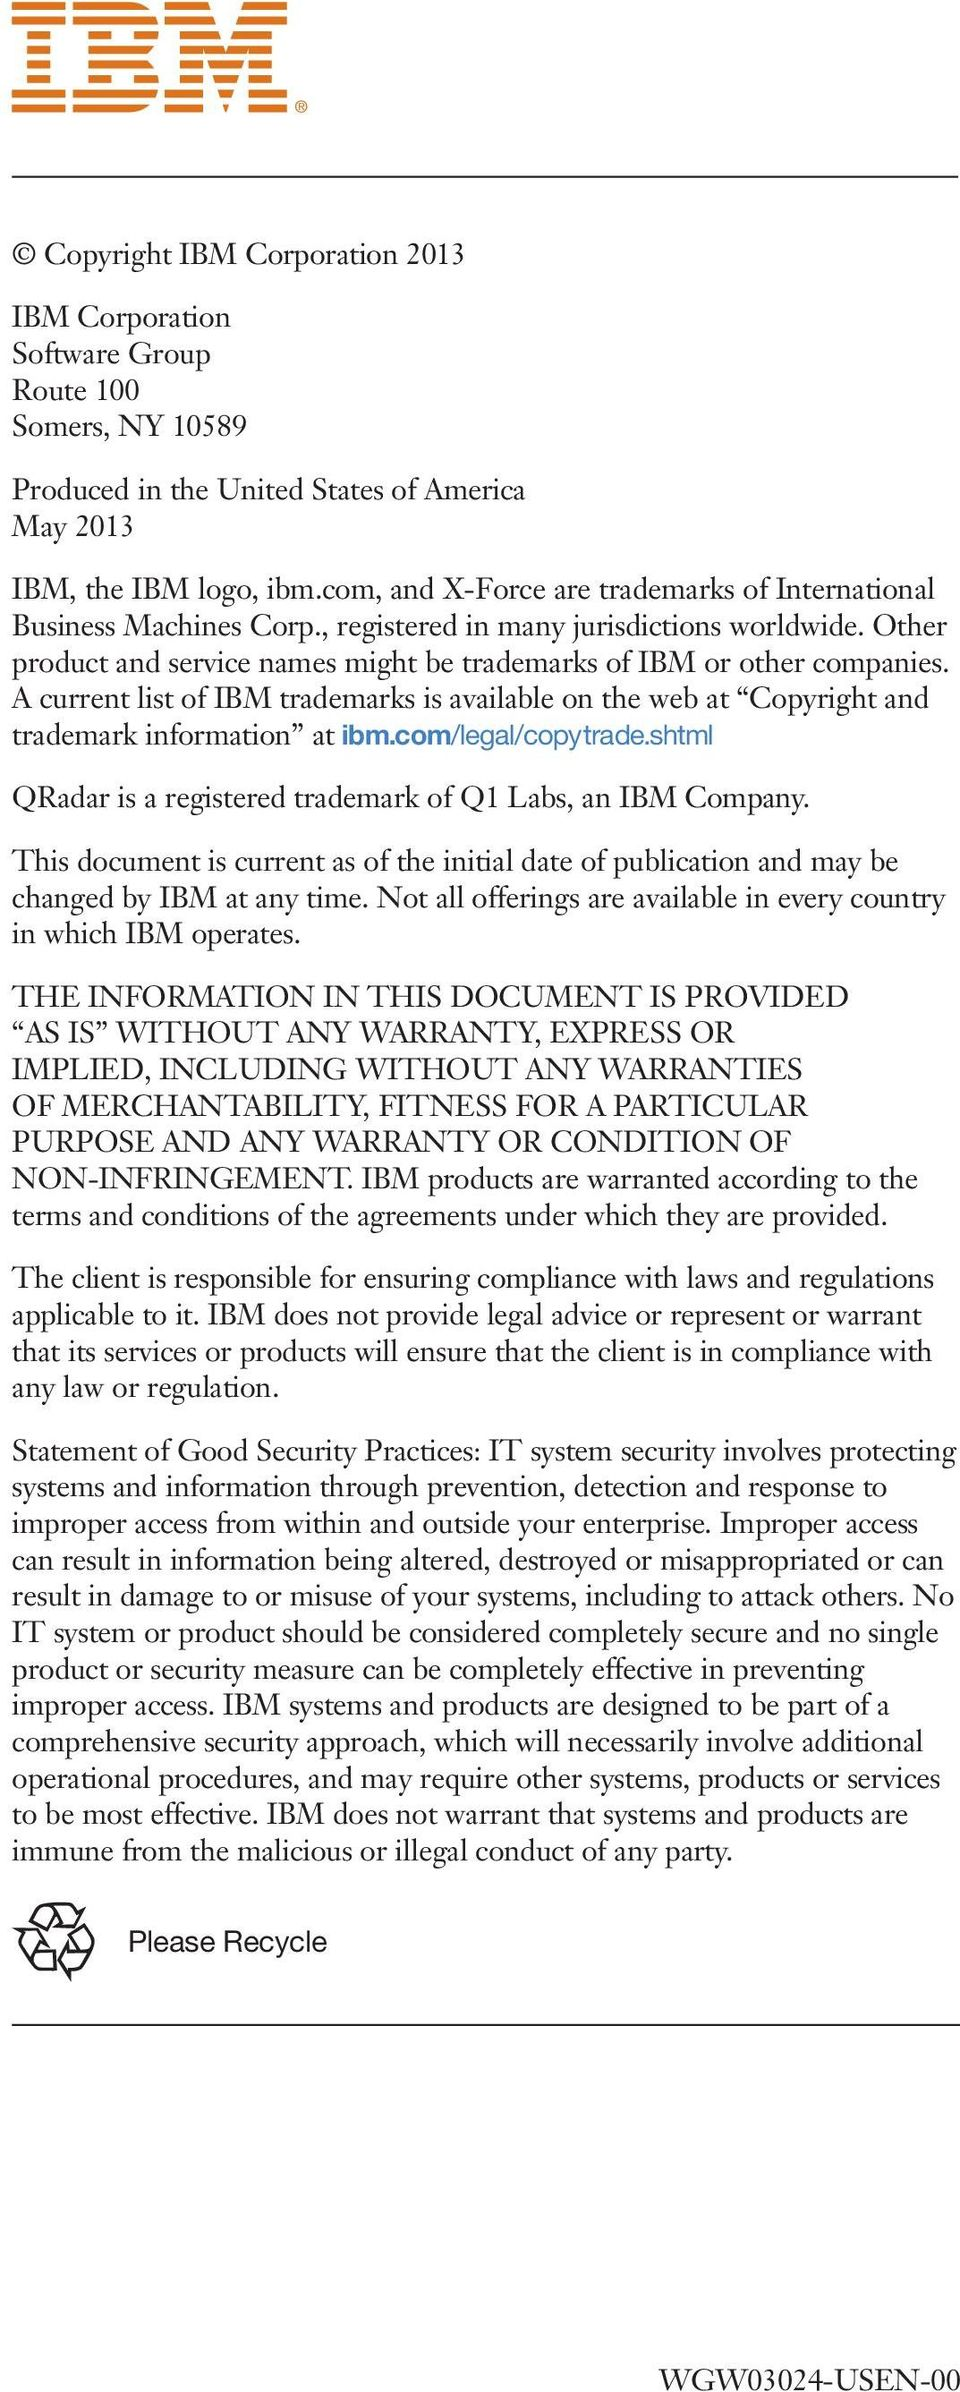 A current list of IBM trademarks is available on the web at Copyright and trademark information at ibm.com/legal/copytrade.shtml QRadar is a registered trademark of Q1 Labs, an IBM Company.